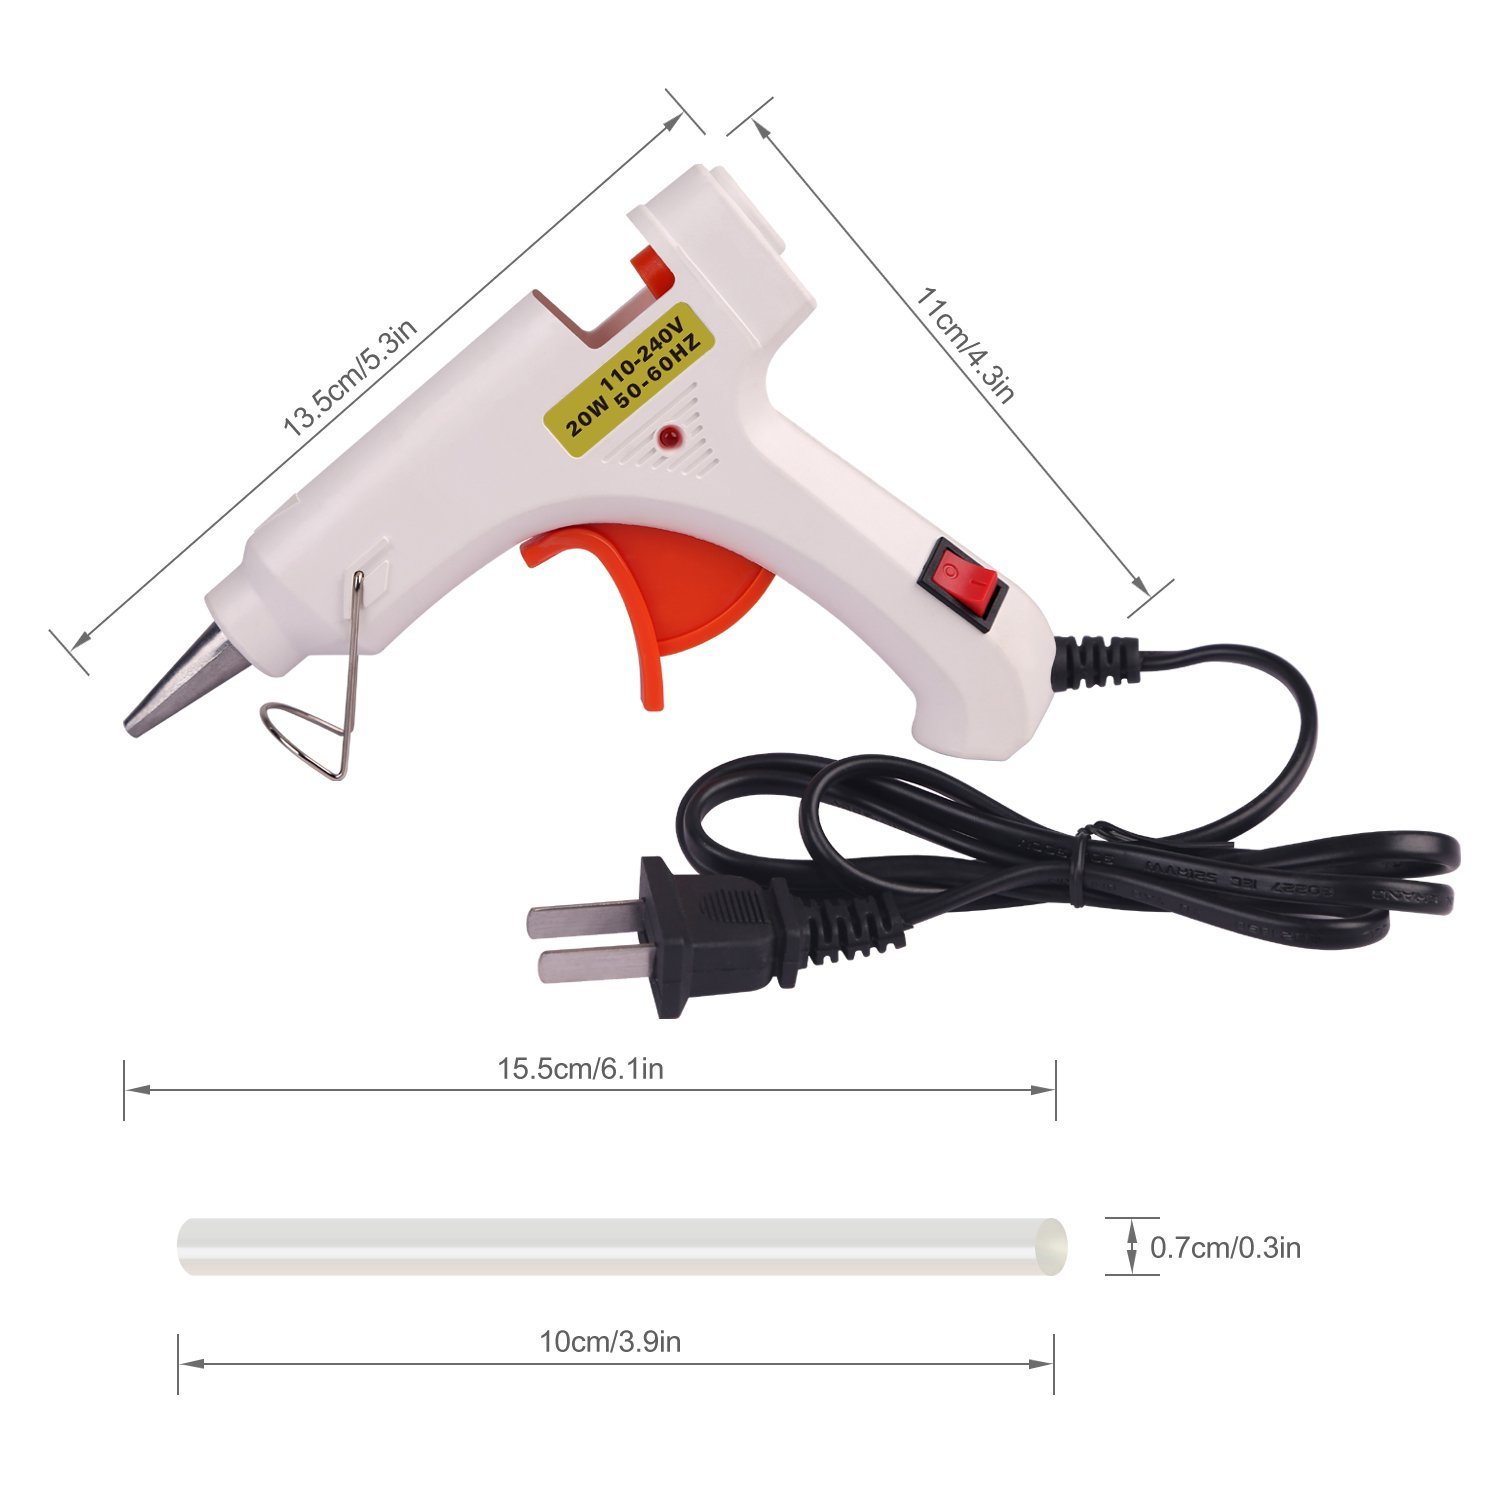 Hot Melt Glue gun with 30 pcs free glue sticks, High temperature melting glue gun with safety stand and built in fuse for over heat protection for small craft projects, home, office and quick repair by FLY5D (Image #3)